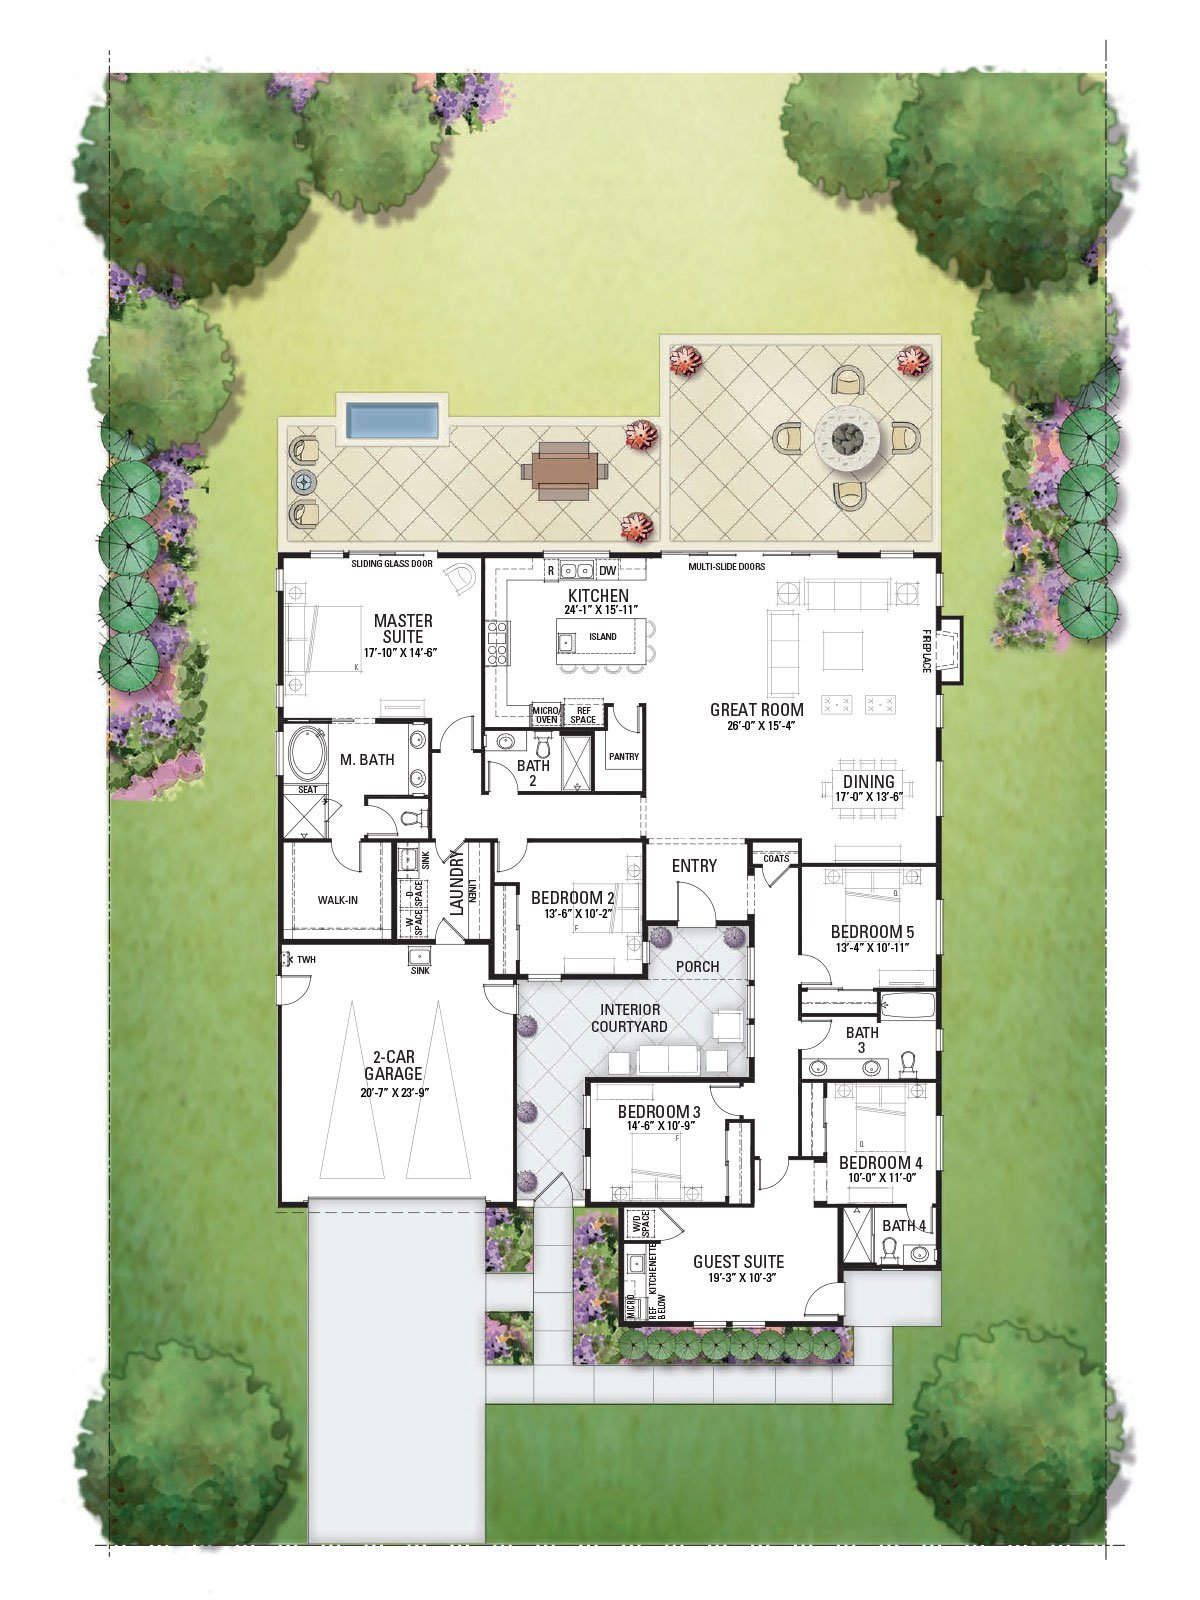 3650 Bellagio Ct Floor Plan 5 New